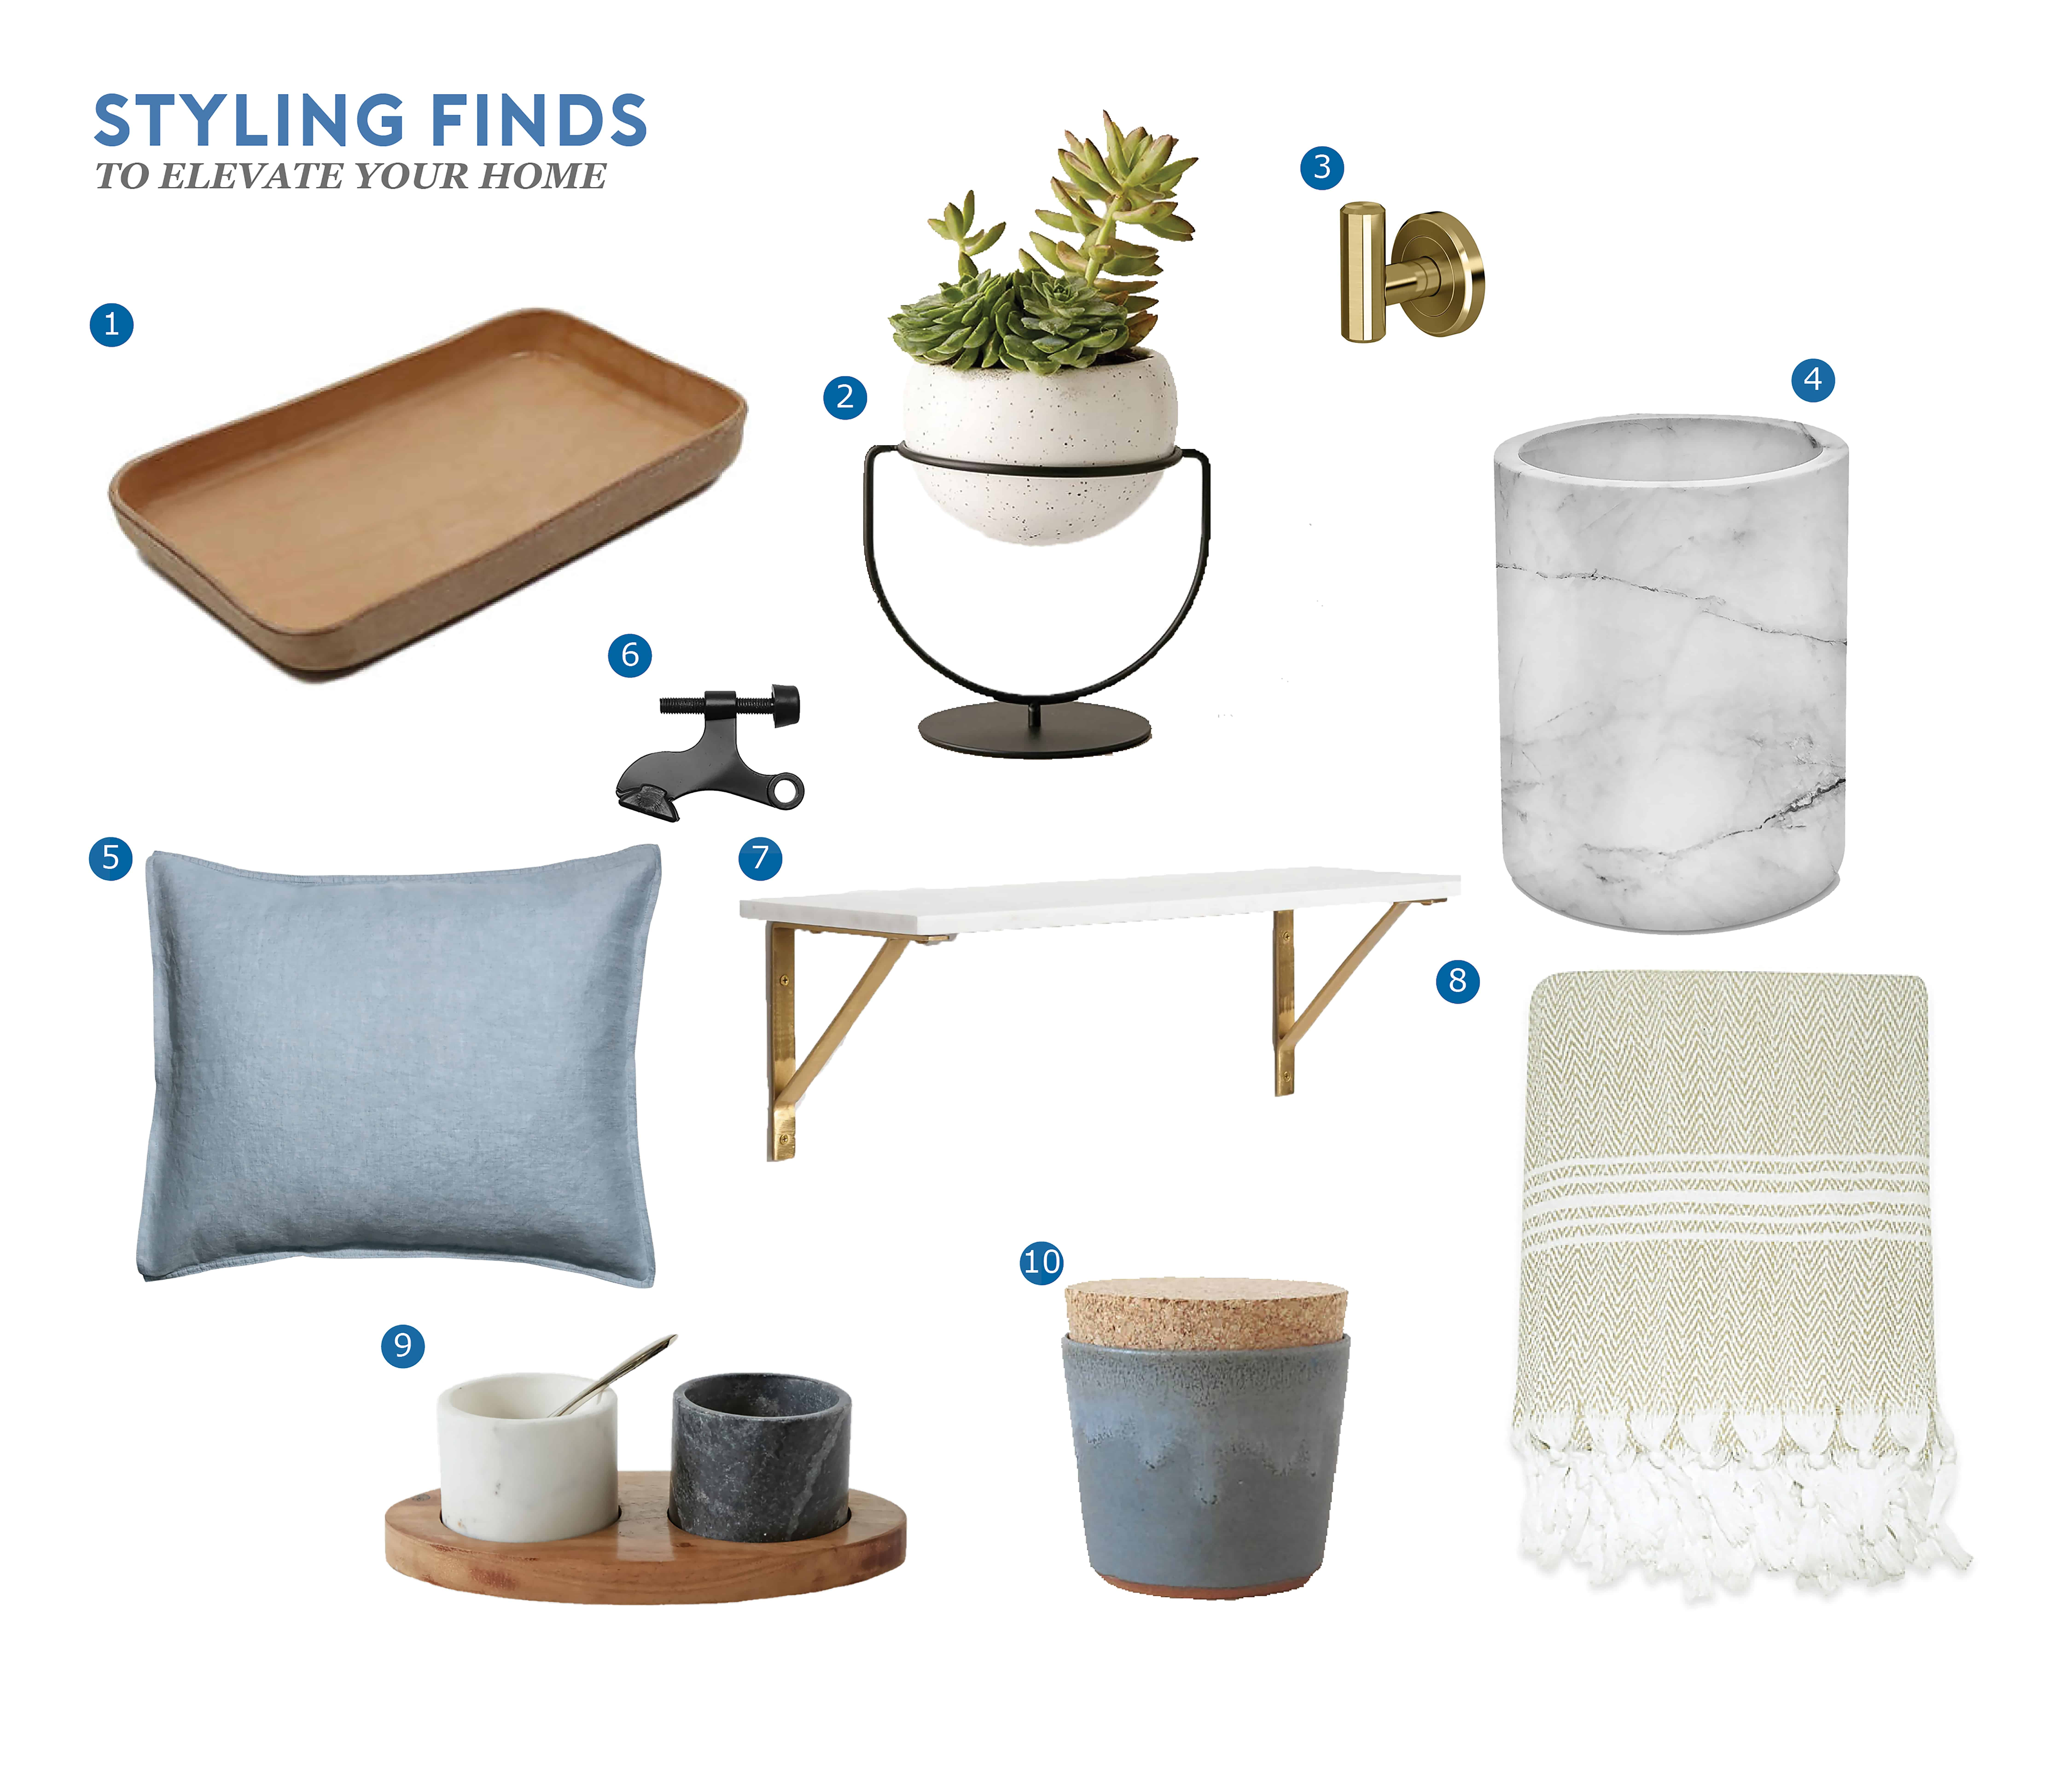 Styling Finds